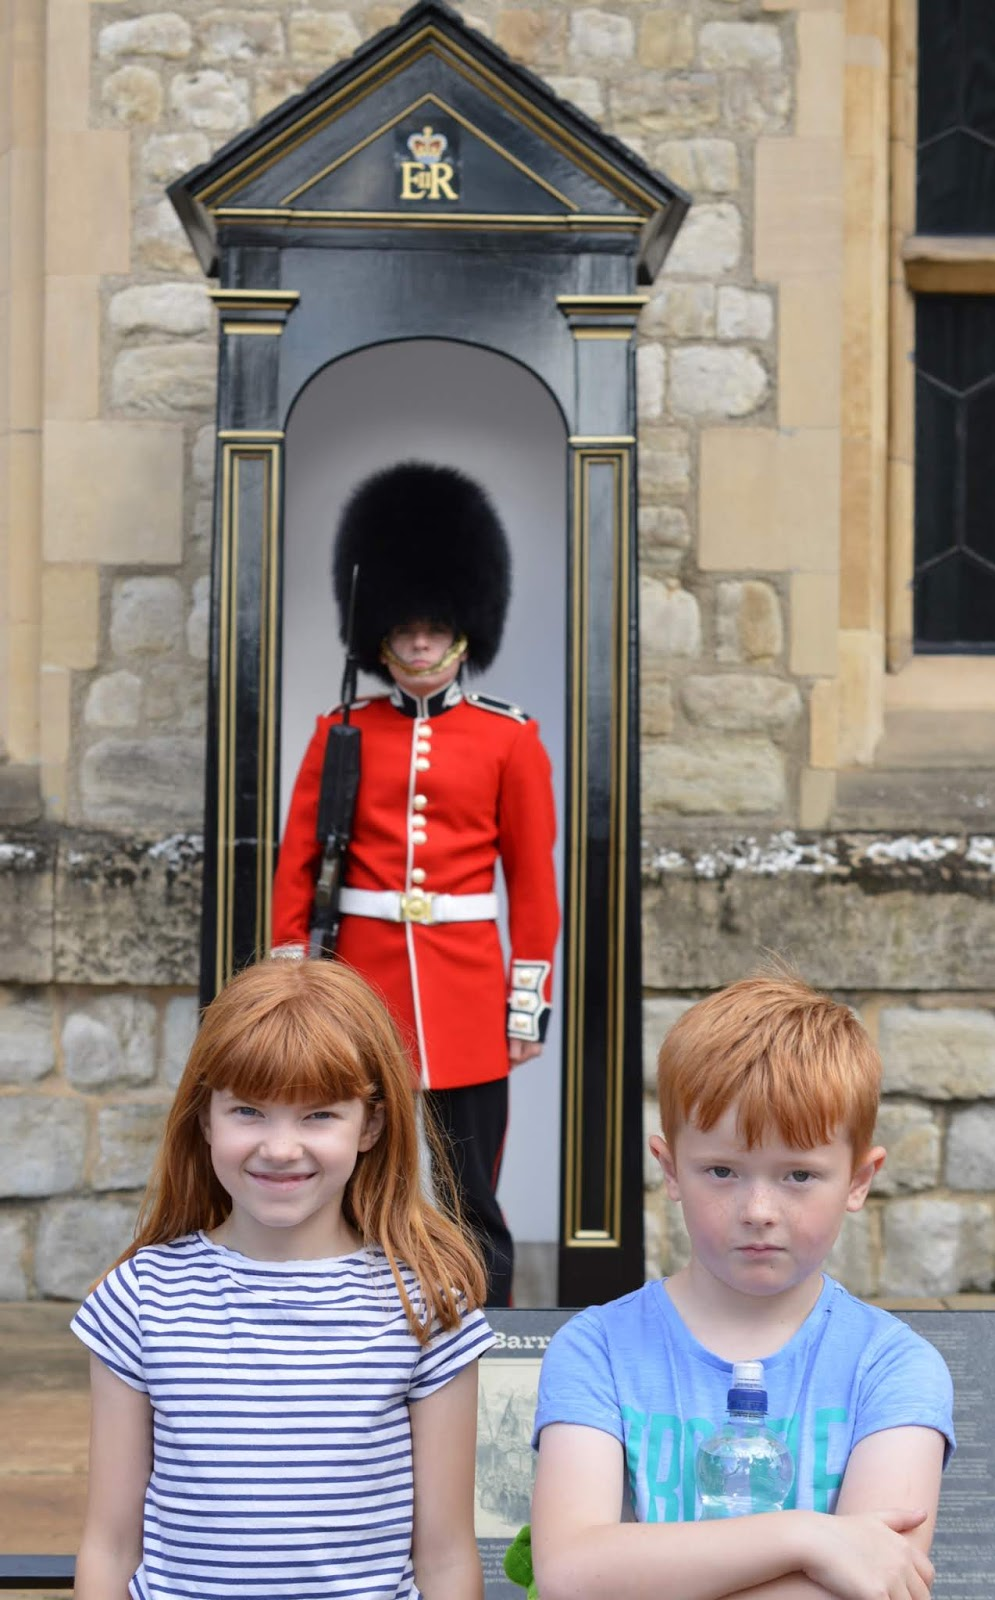 The LNER Family Return Ticket Newcastle-London. #OurLNER #FamilyReturn  - meeting the Queen's guard